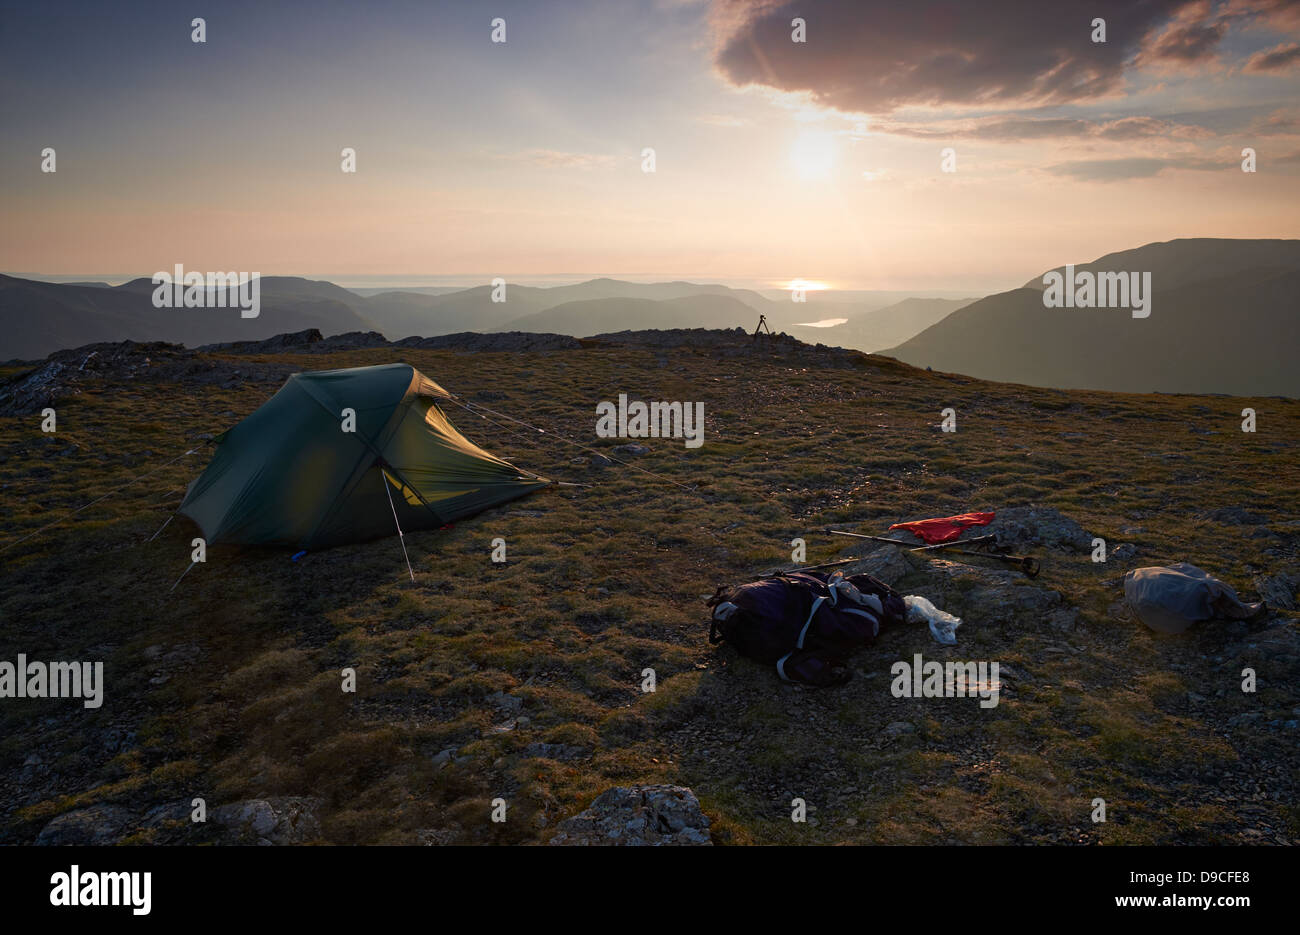 Camping Salvaje en la cumbre de Robinson, Buttermere en el Lake District. Imagen De Stock